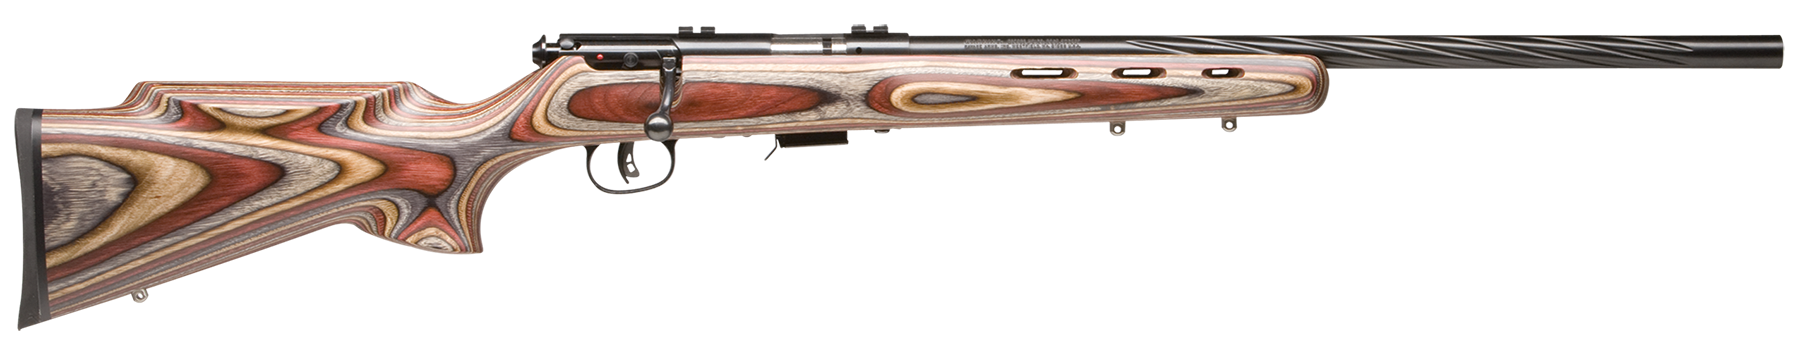 Savage Mark II BRJ 22 LR 21